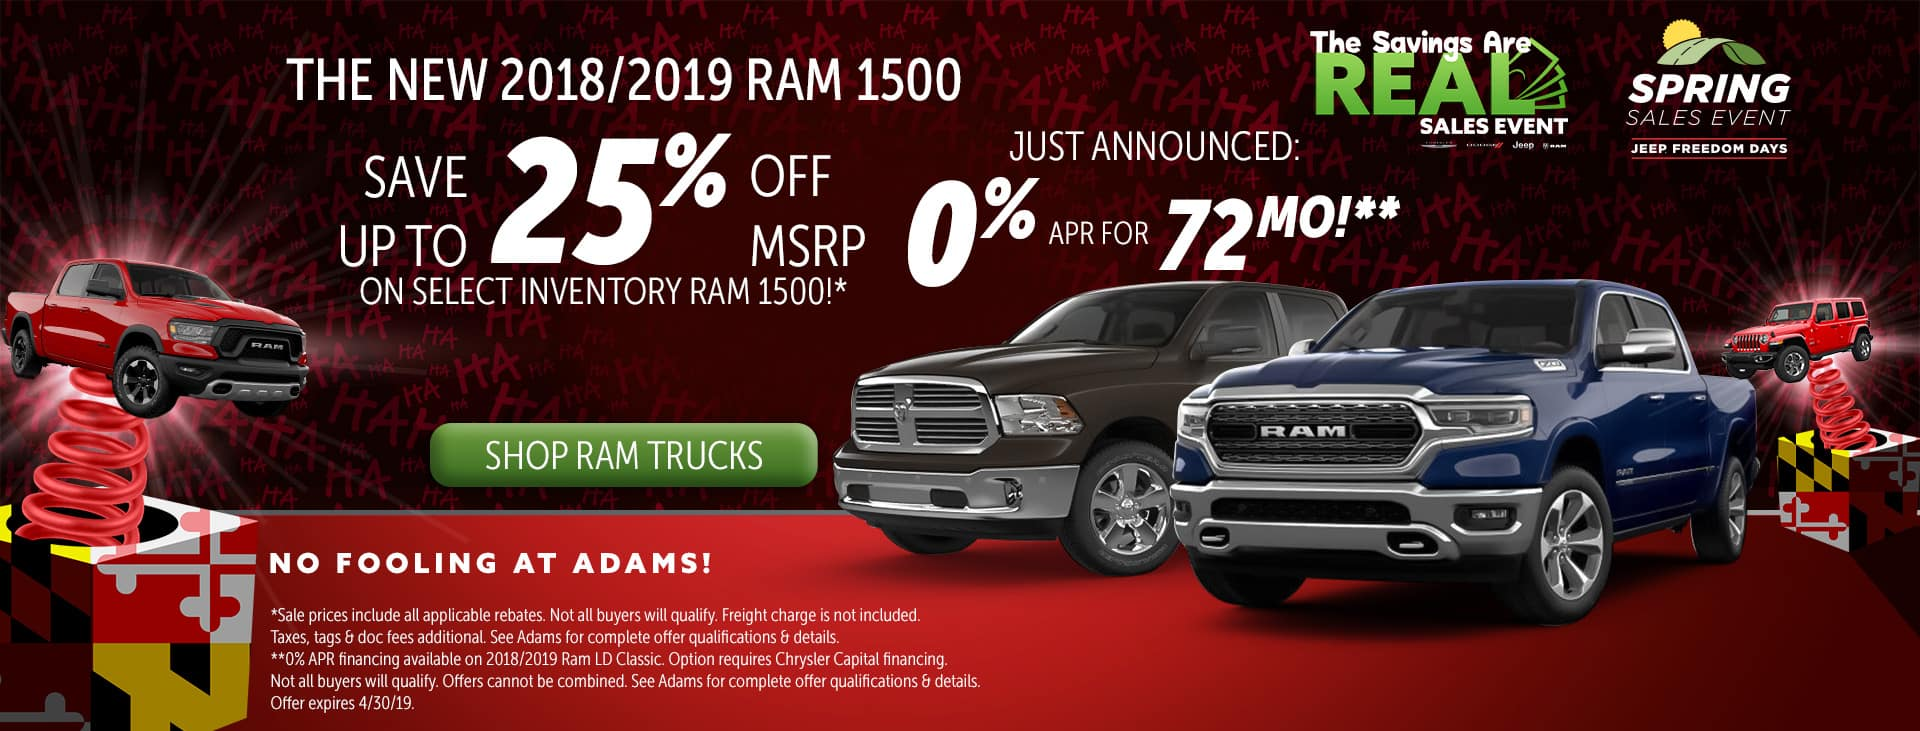 up to 25% off ram 1500!